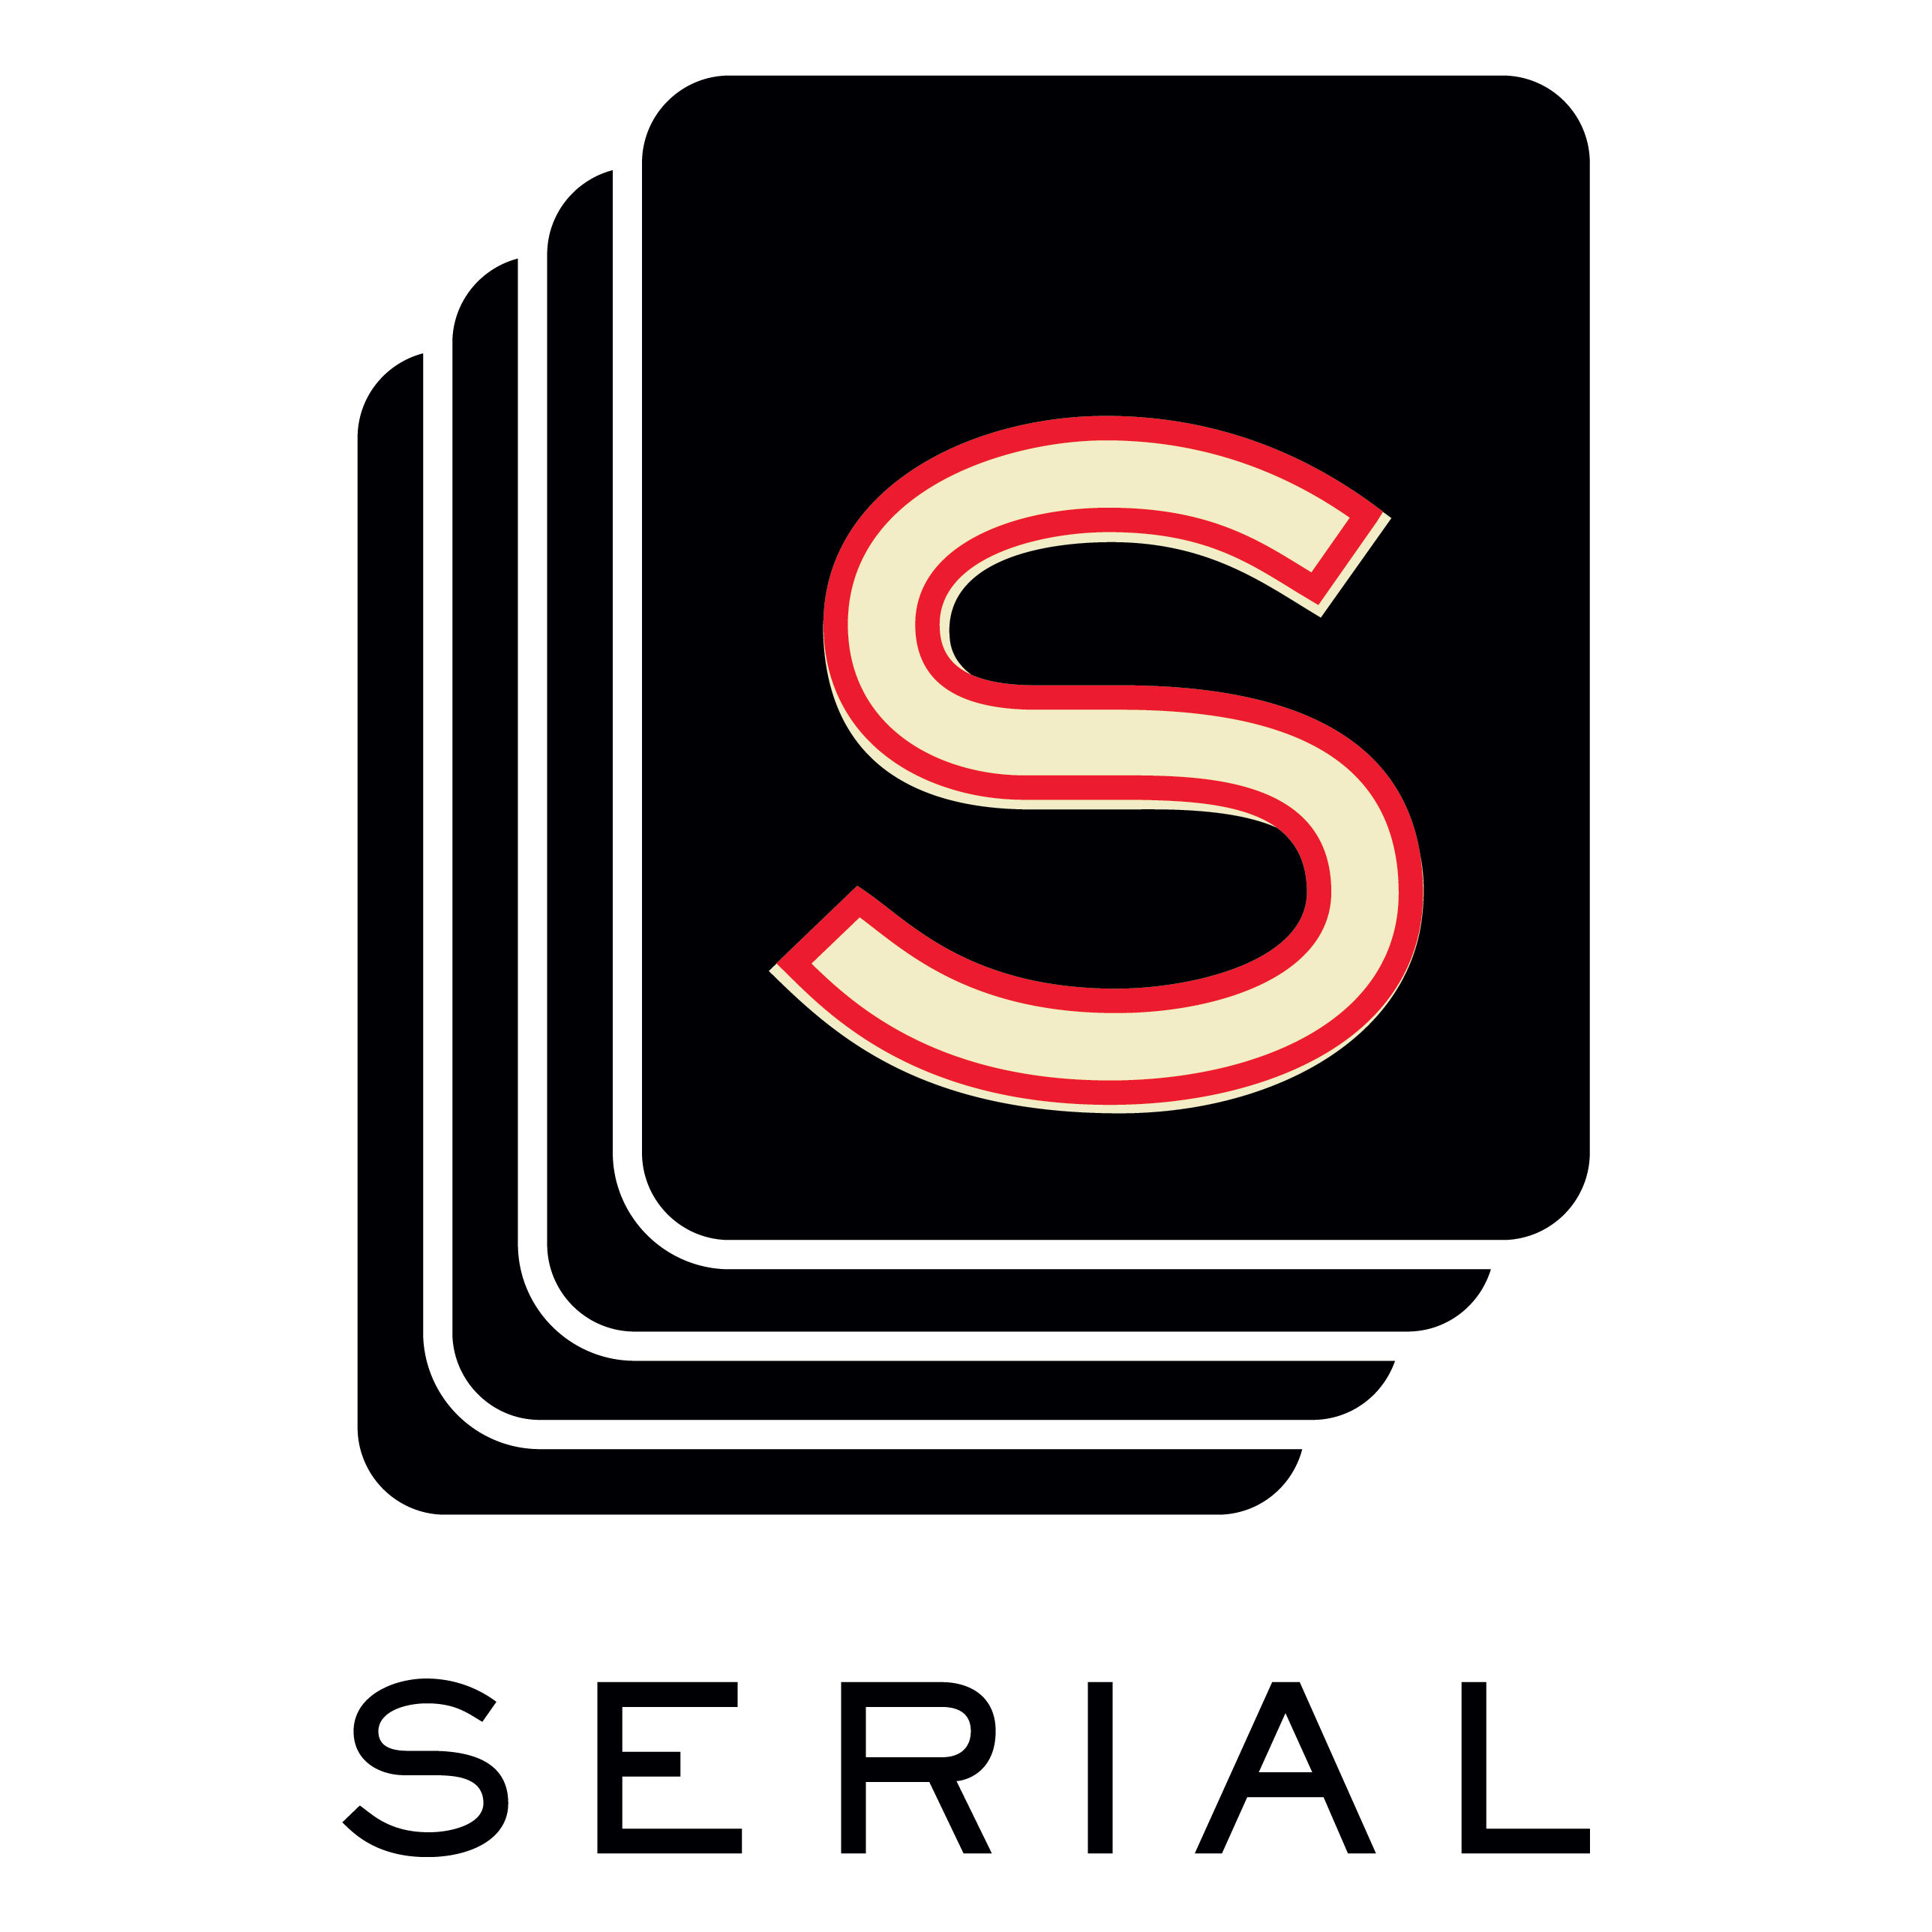 Serial started my real love of listening to podcasts.